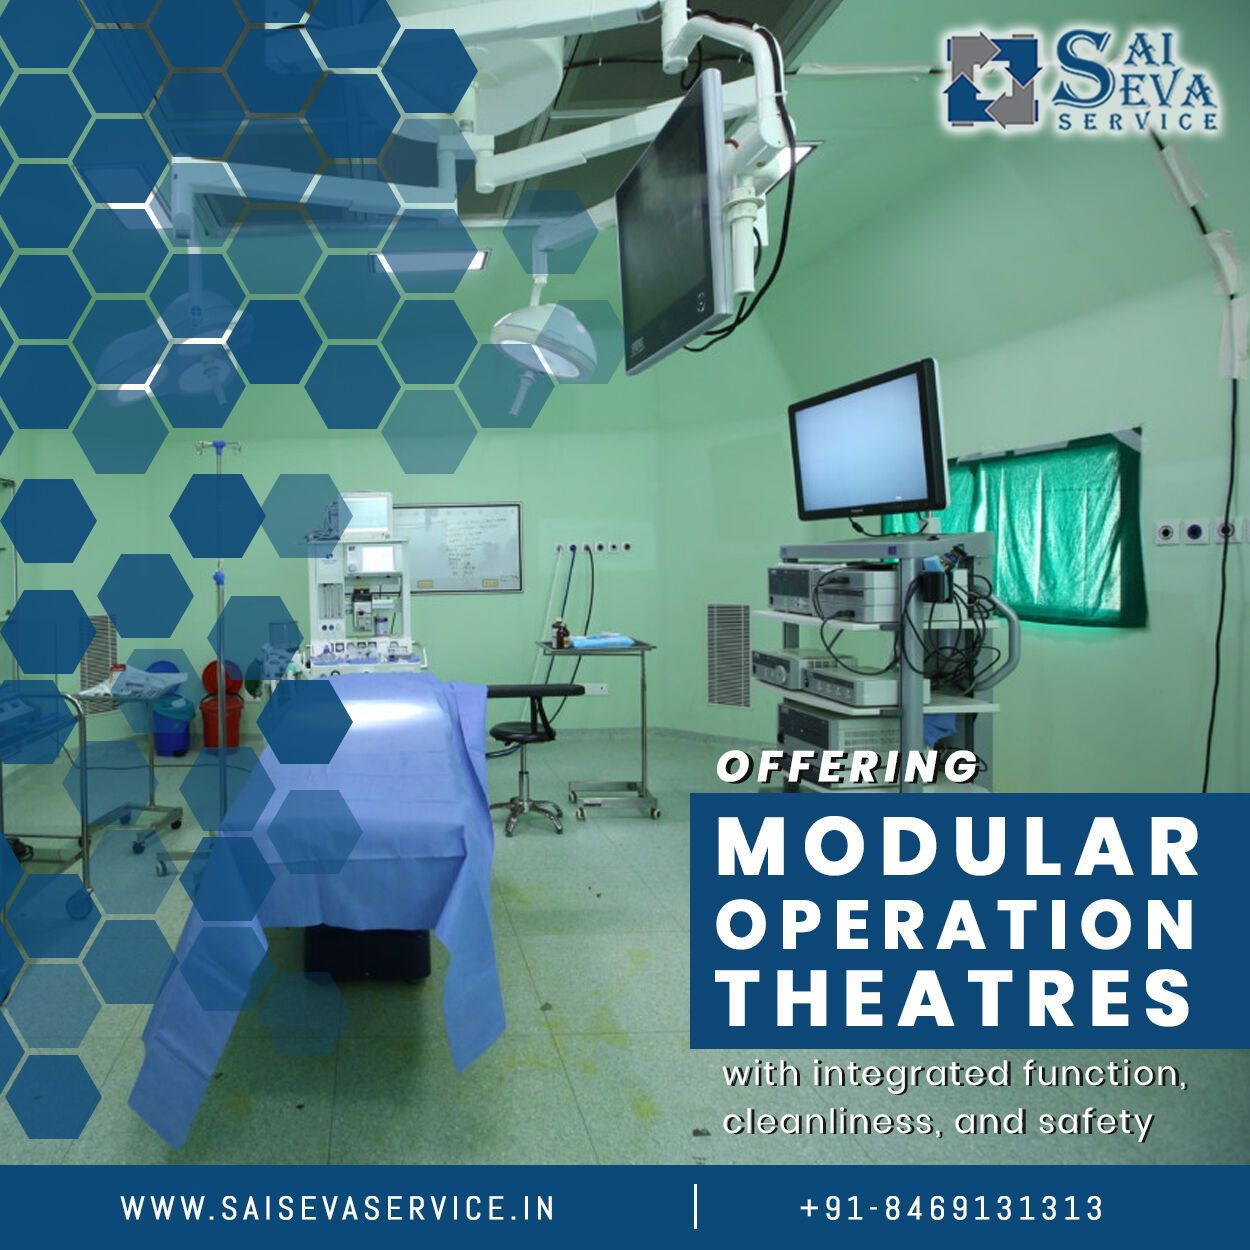 Get high quality modular operation theater designing, set